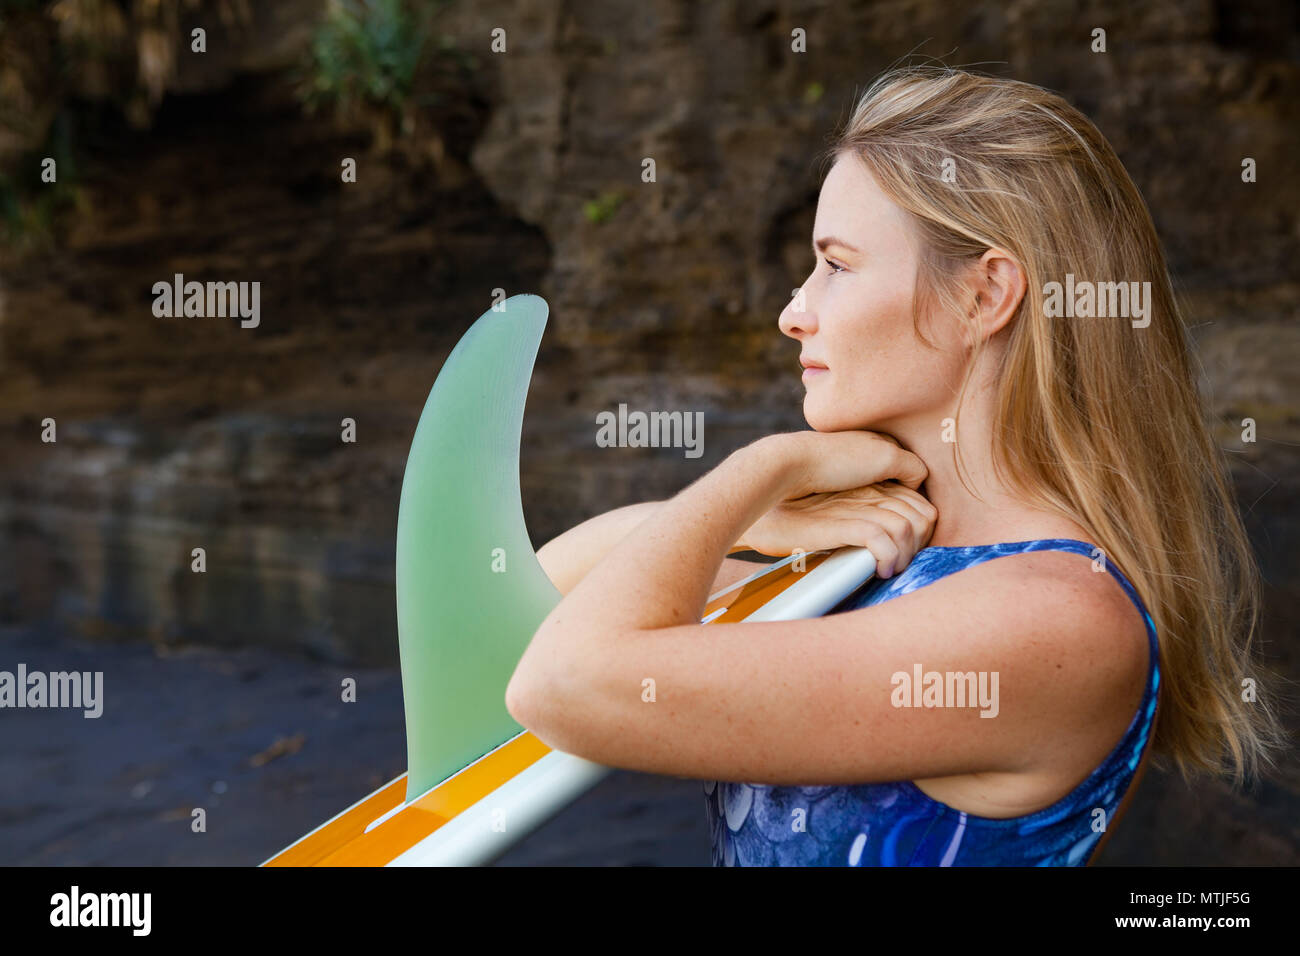 Sporty girl in bikini with surfboard stand by black cliff on beach. Surfer woman look at sea surf and breaking waves. Active people in sport adventure - Stock Image